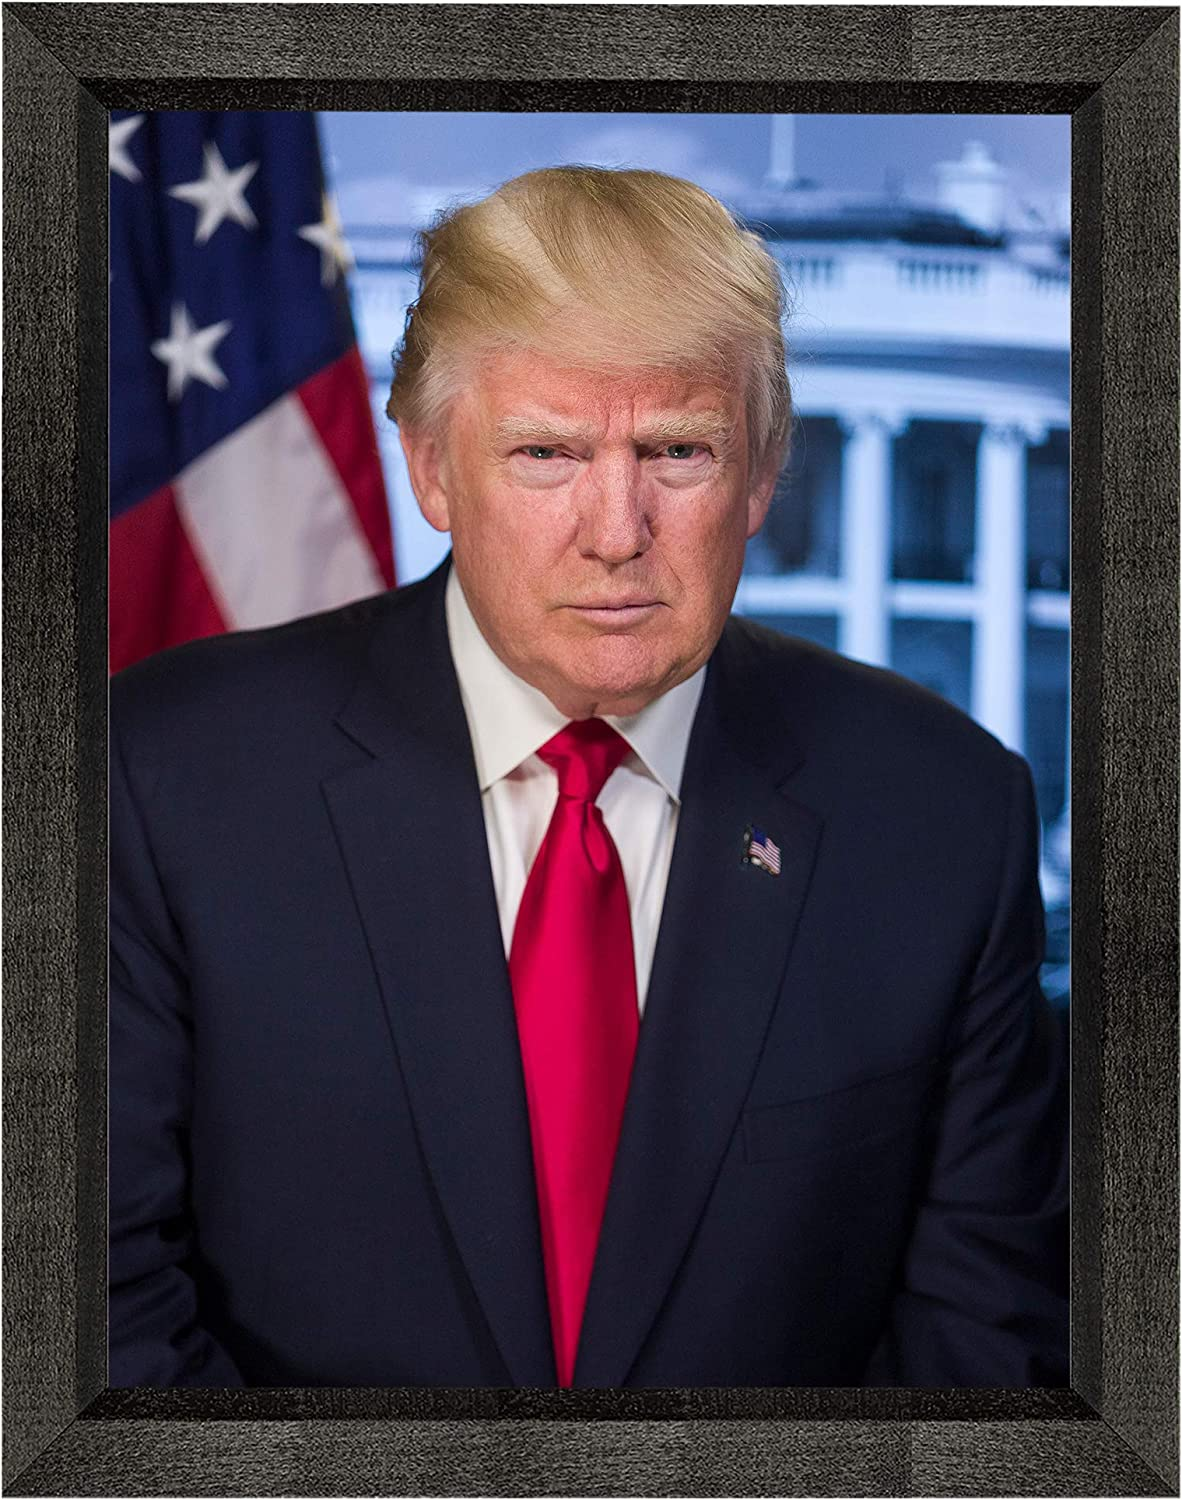 """Donald Trump Photograph in a Black Beveled Frame - Historical Artwork from 2016 - US President Portrait - (8"""" x 10"""") - Gloss"""